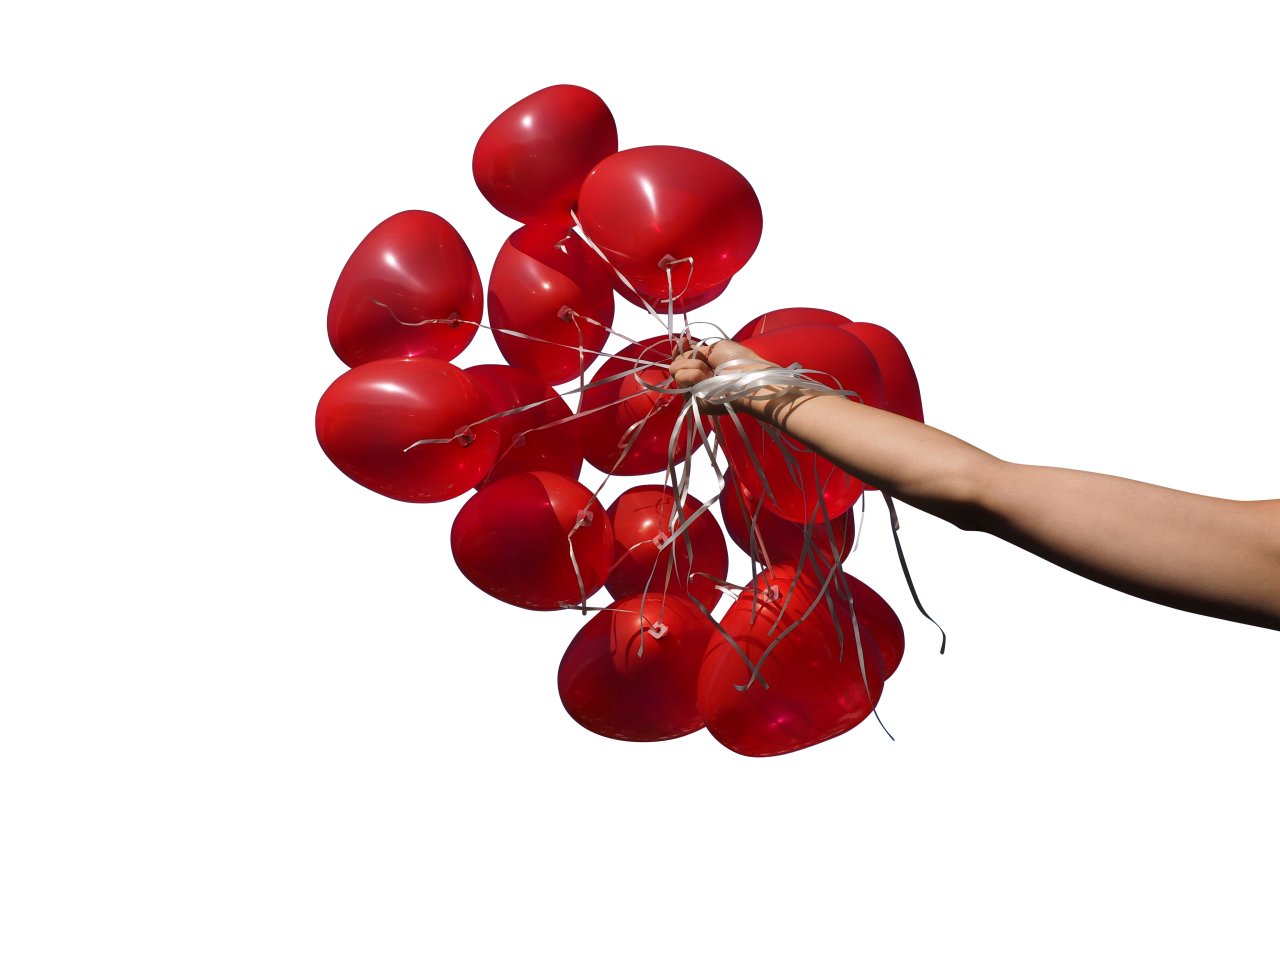 Red Heart Balloons in Hand PNG Image